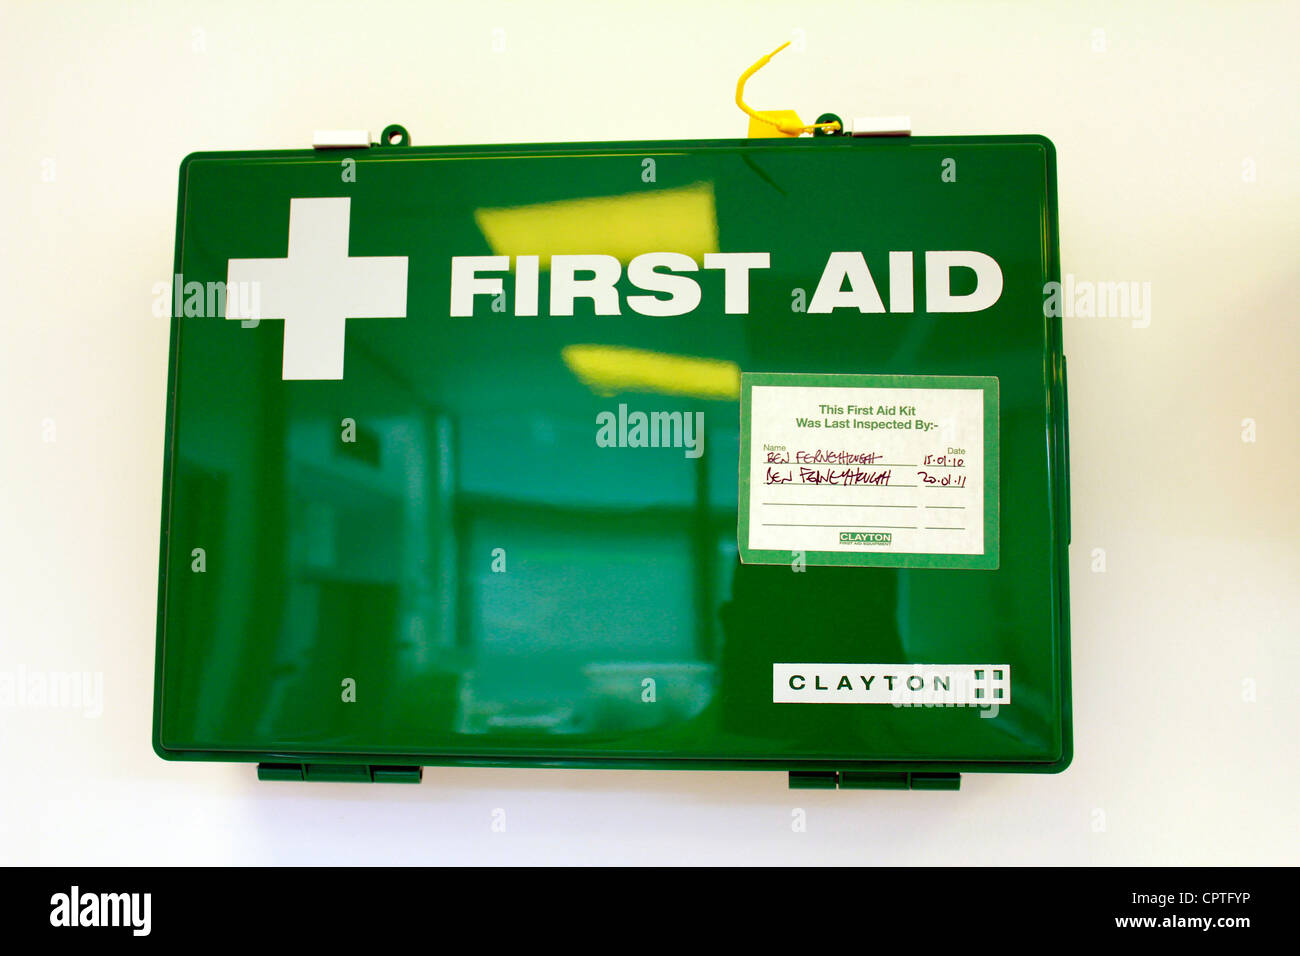 First aid kit inside a laboratory - Stock Image